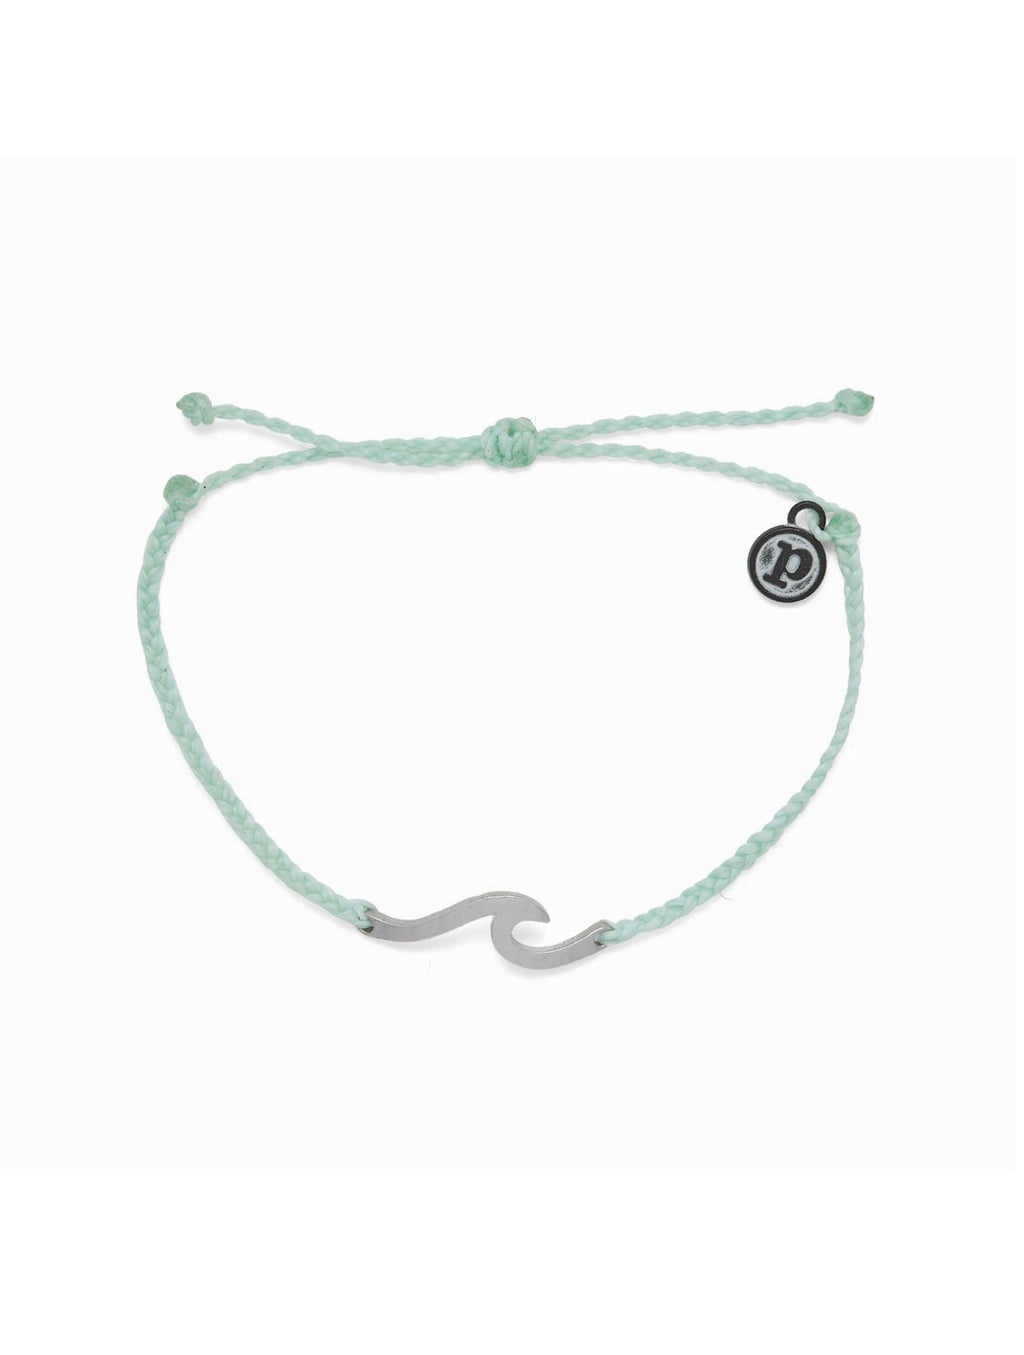 Pura Vida Hammered Wave Bracelet in Winterfresh